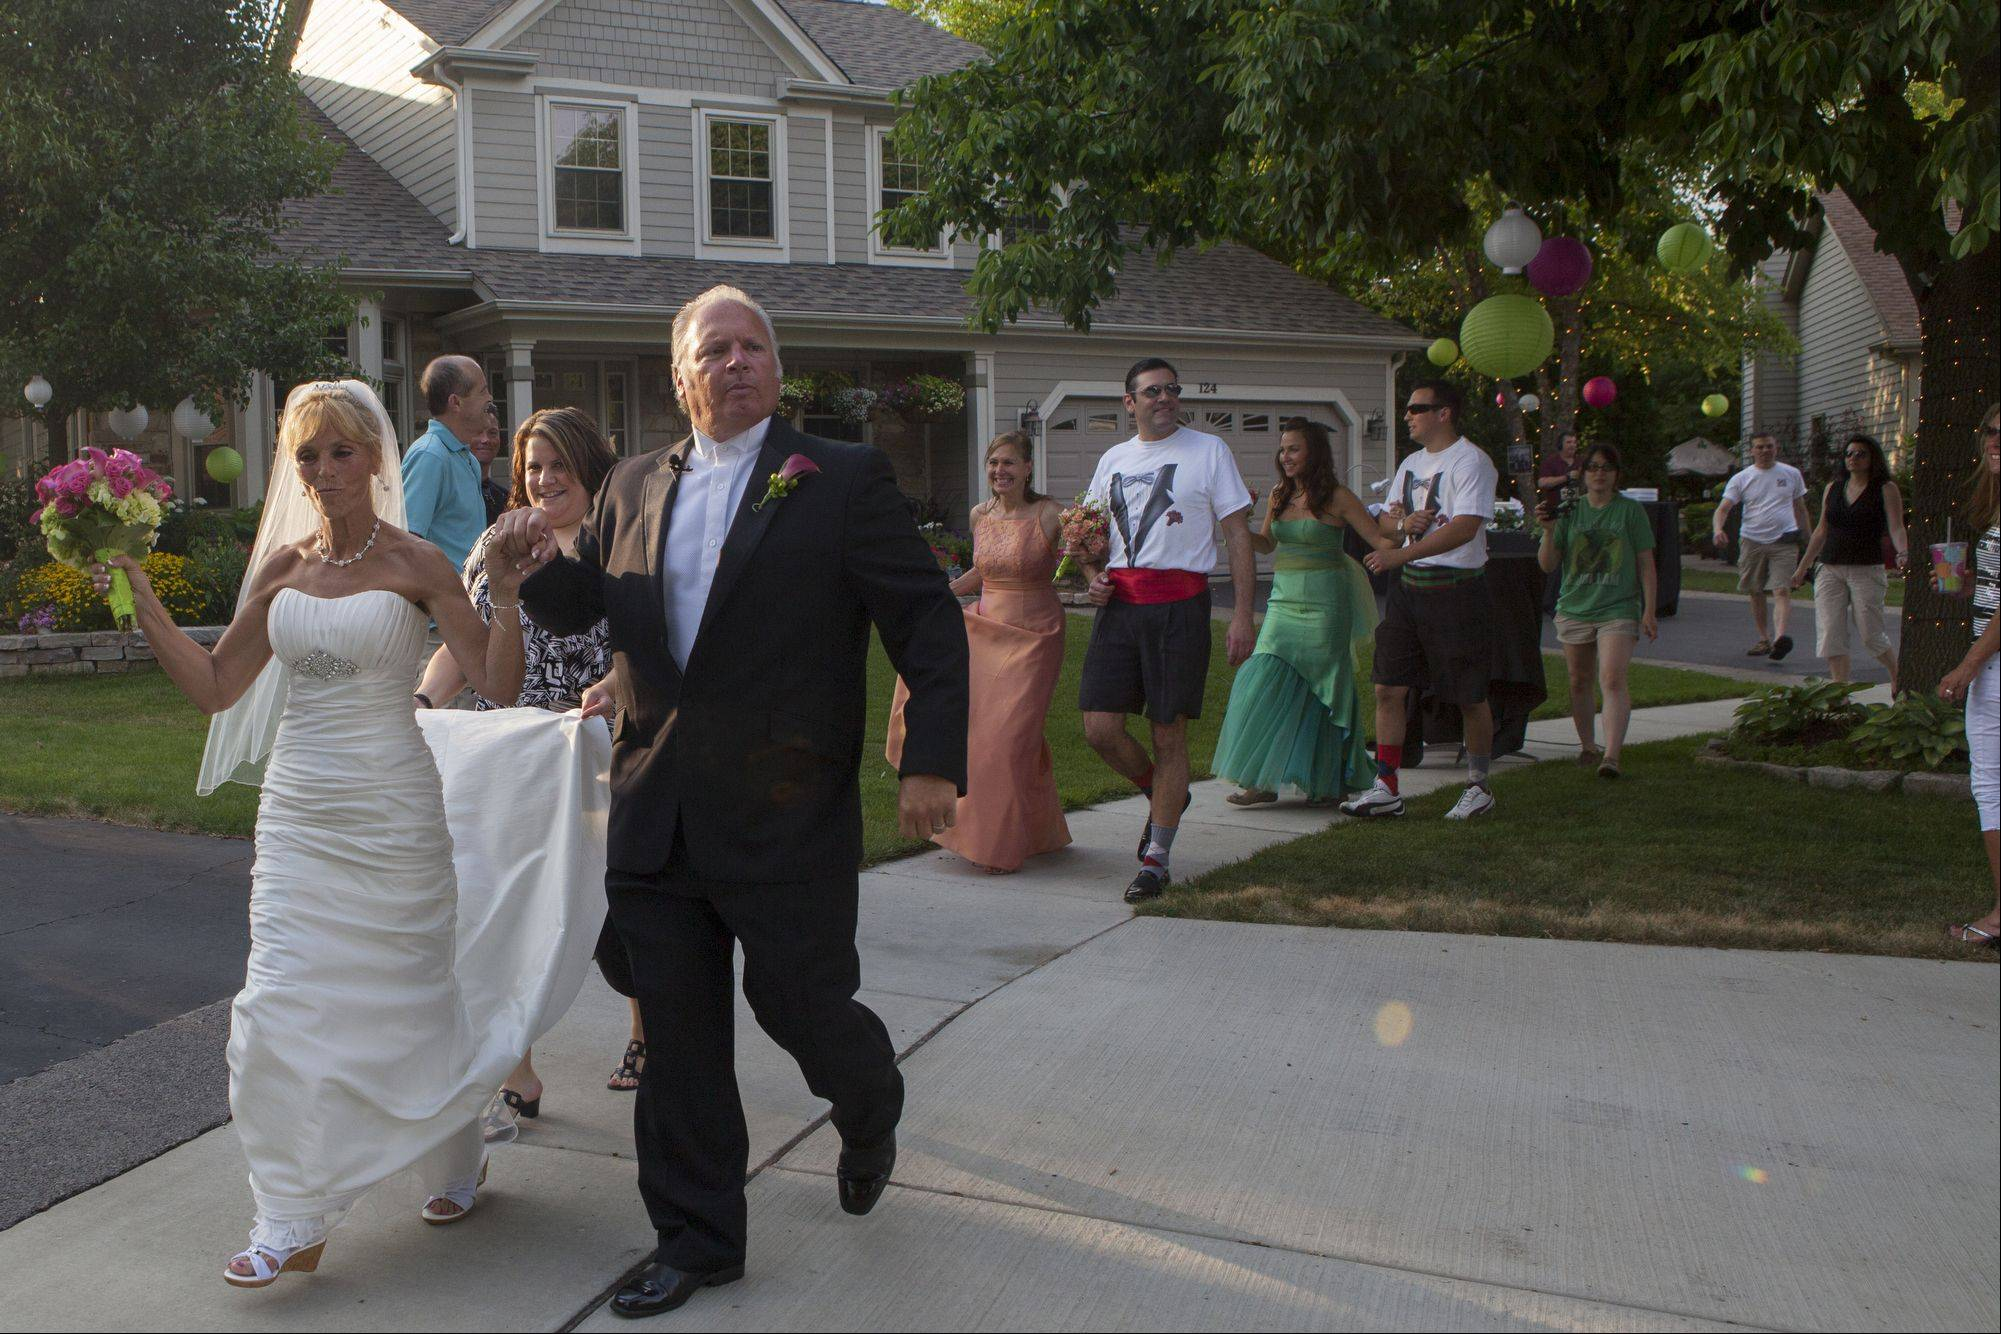 Libby Watkins and Mike Conjura surprised their family and friends on Sunday when they decided to have a flash mob wedding at their home in Schaumburg.